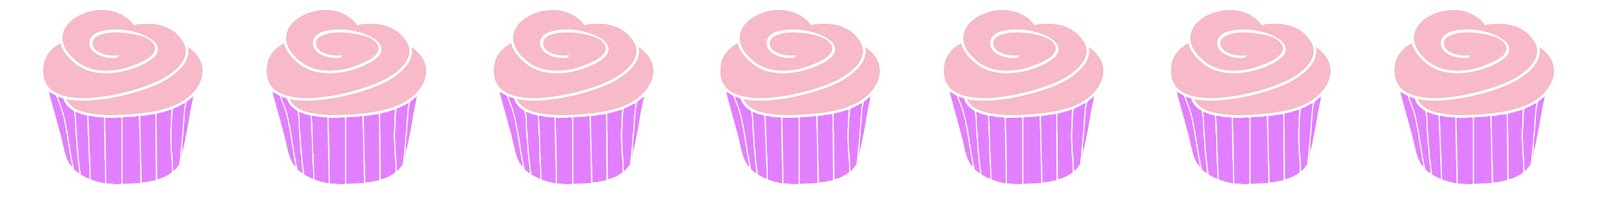 1600x207 Images Of Cupcake Wallpaper Border